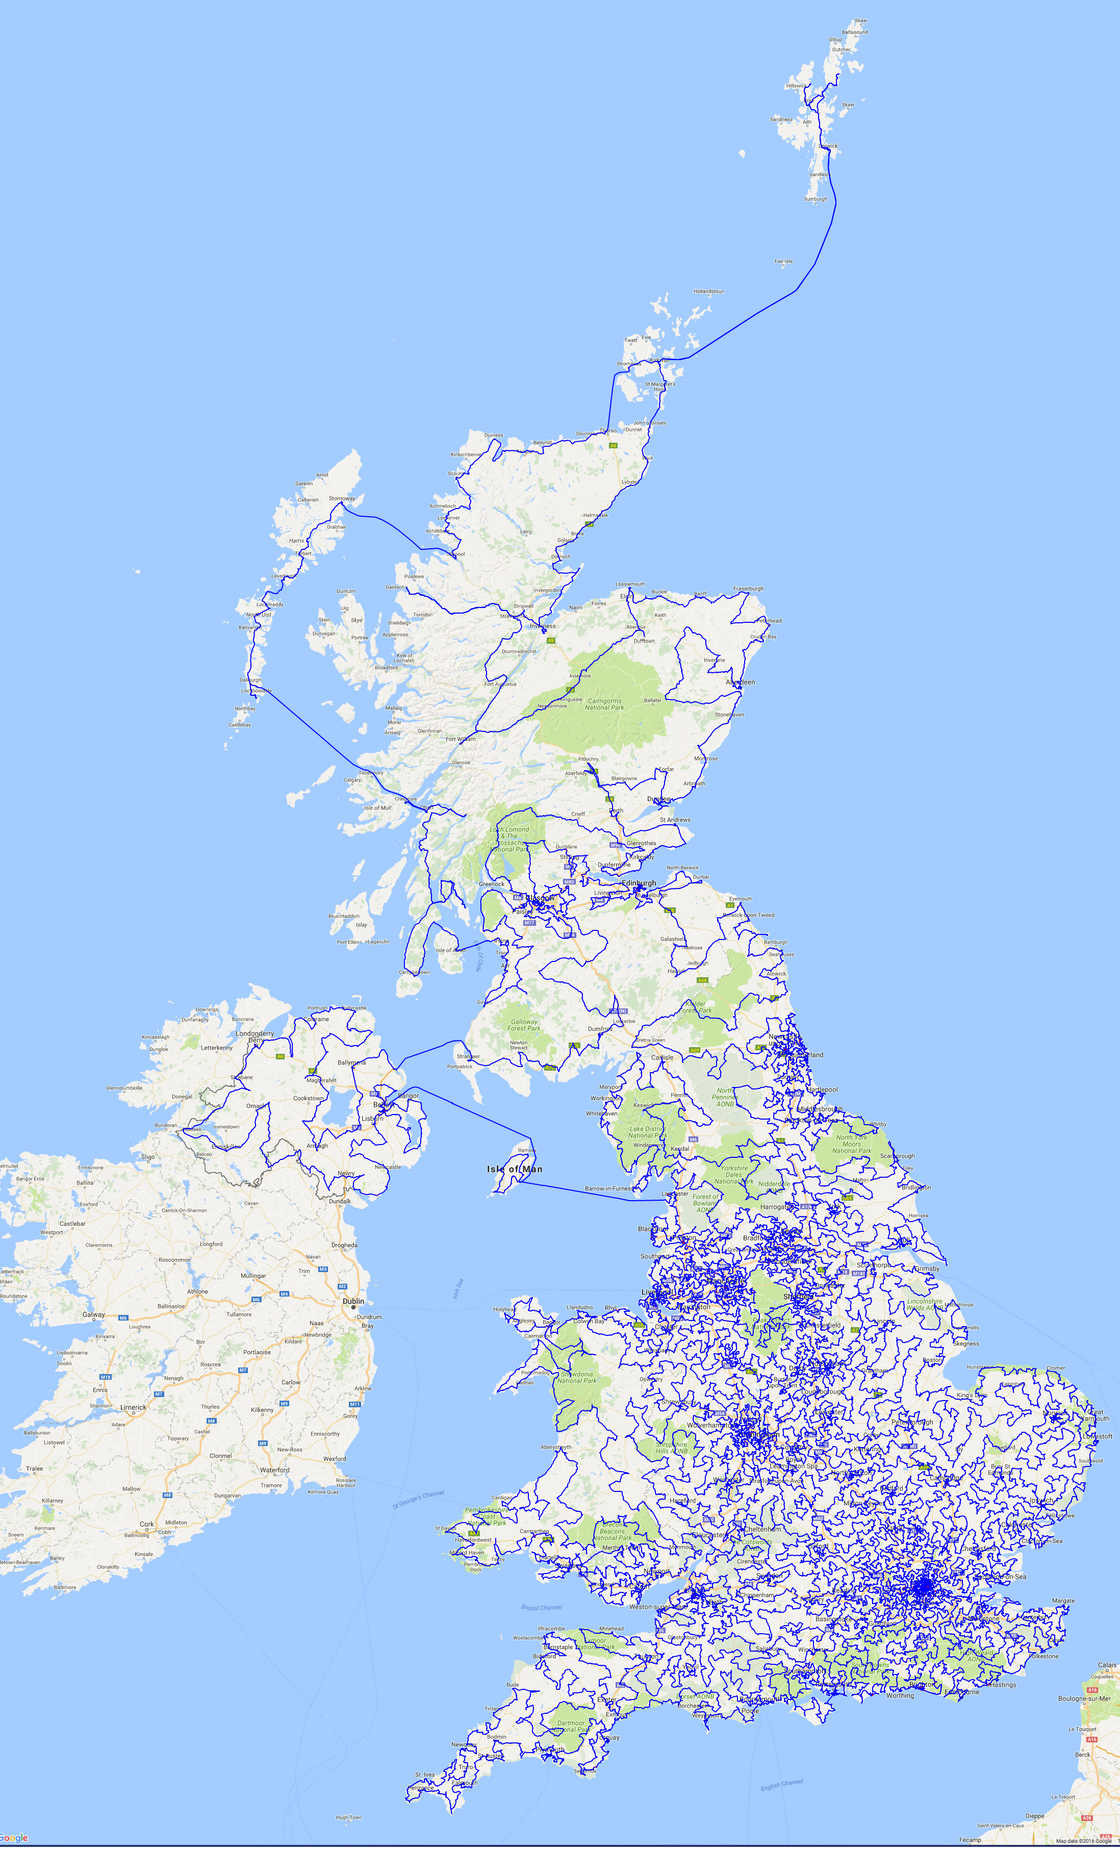 Beer overdose - Displaying all the 24,727 pubs of UK on a single map